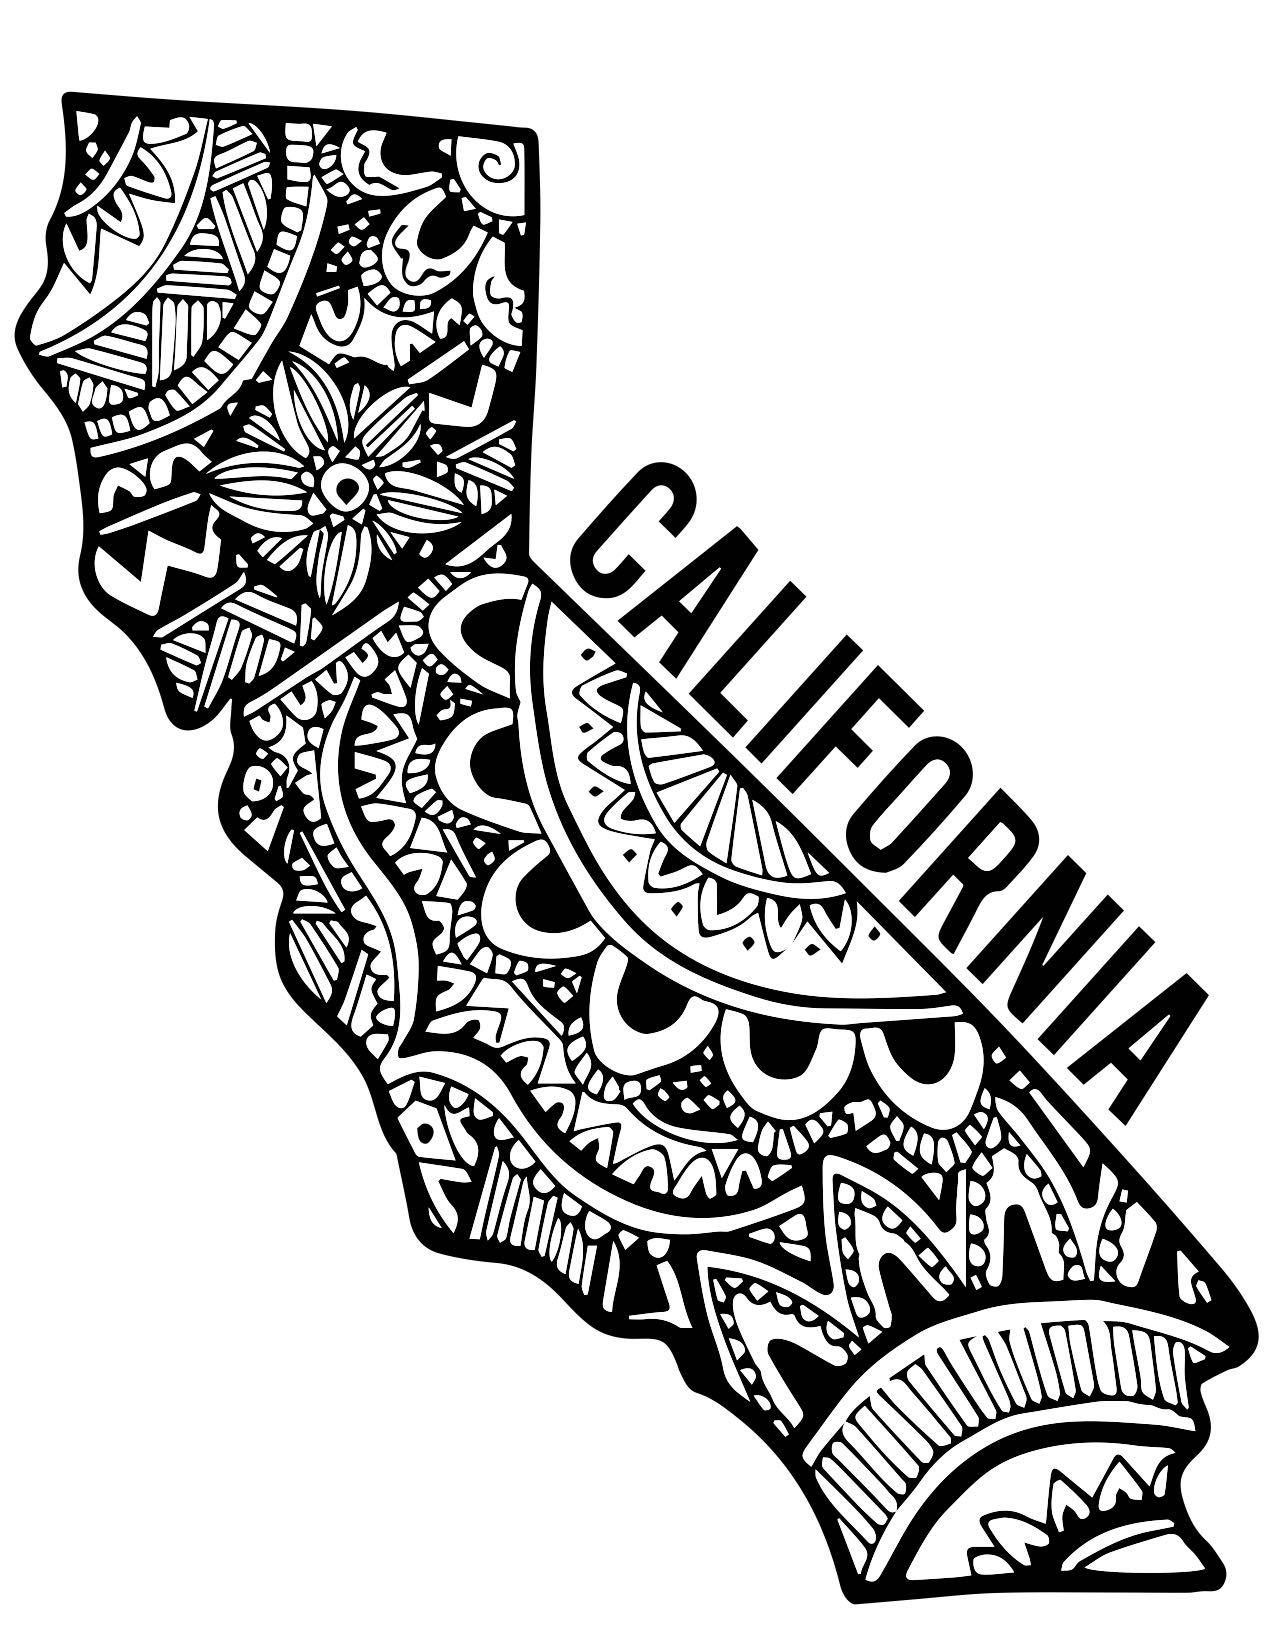 State Of California Drawing At Getdrawings